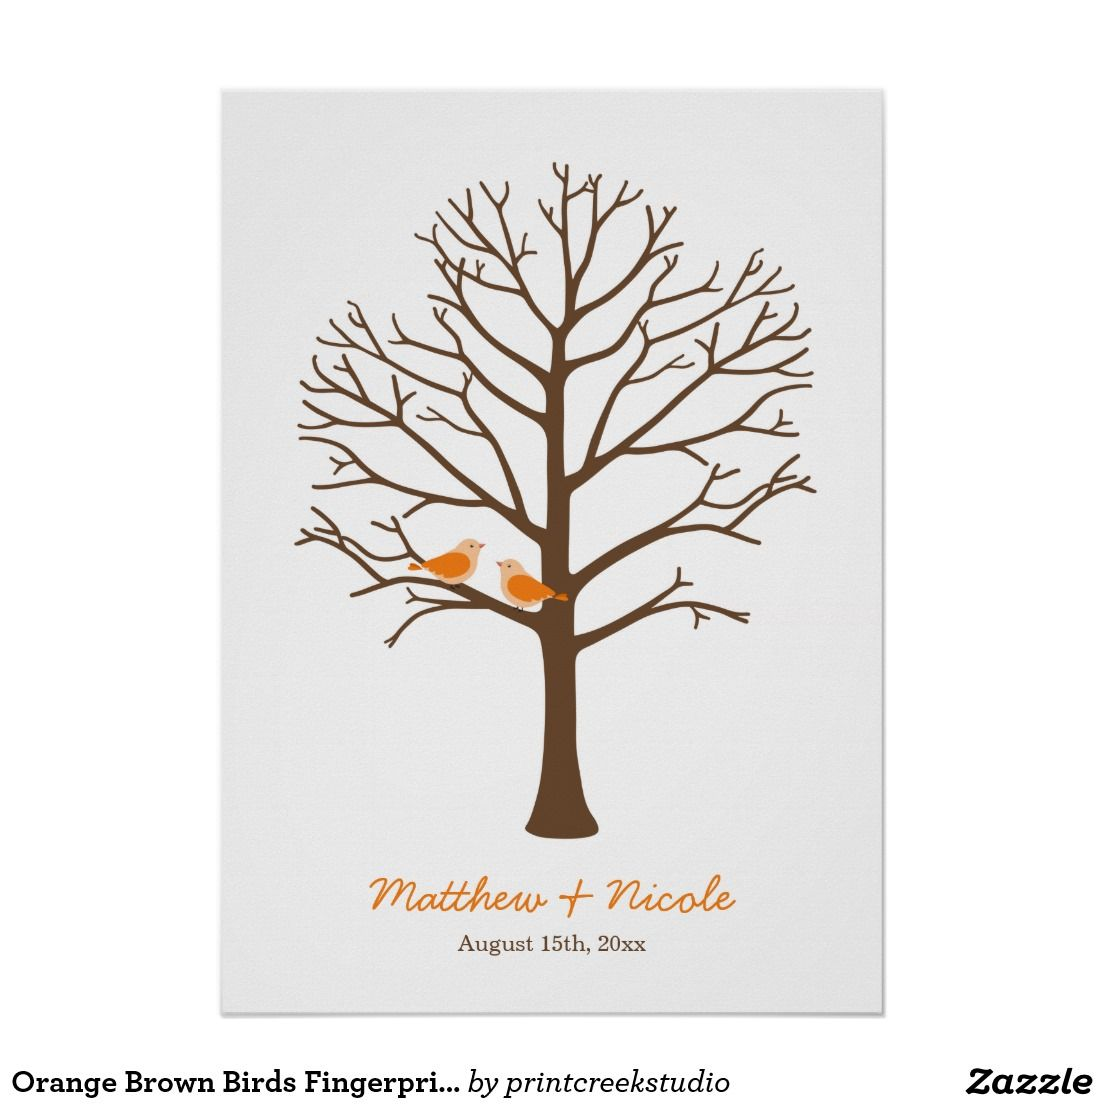 Orange Brown Birds Fingerprint Tree Wedding Poster | Pinterest ...